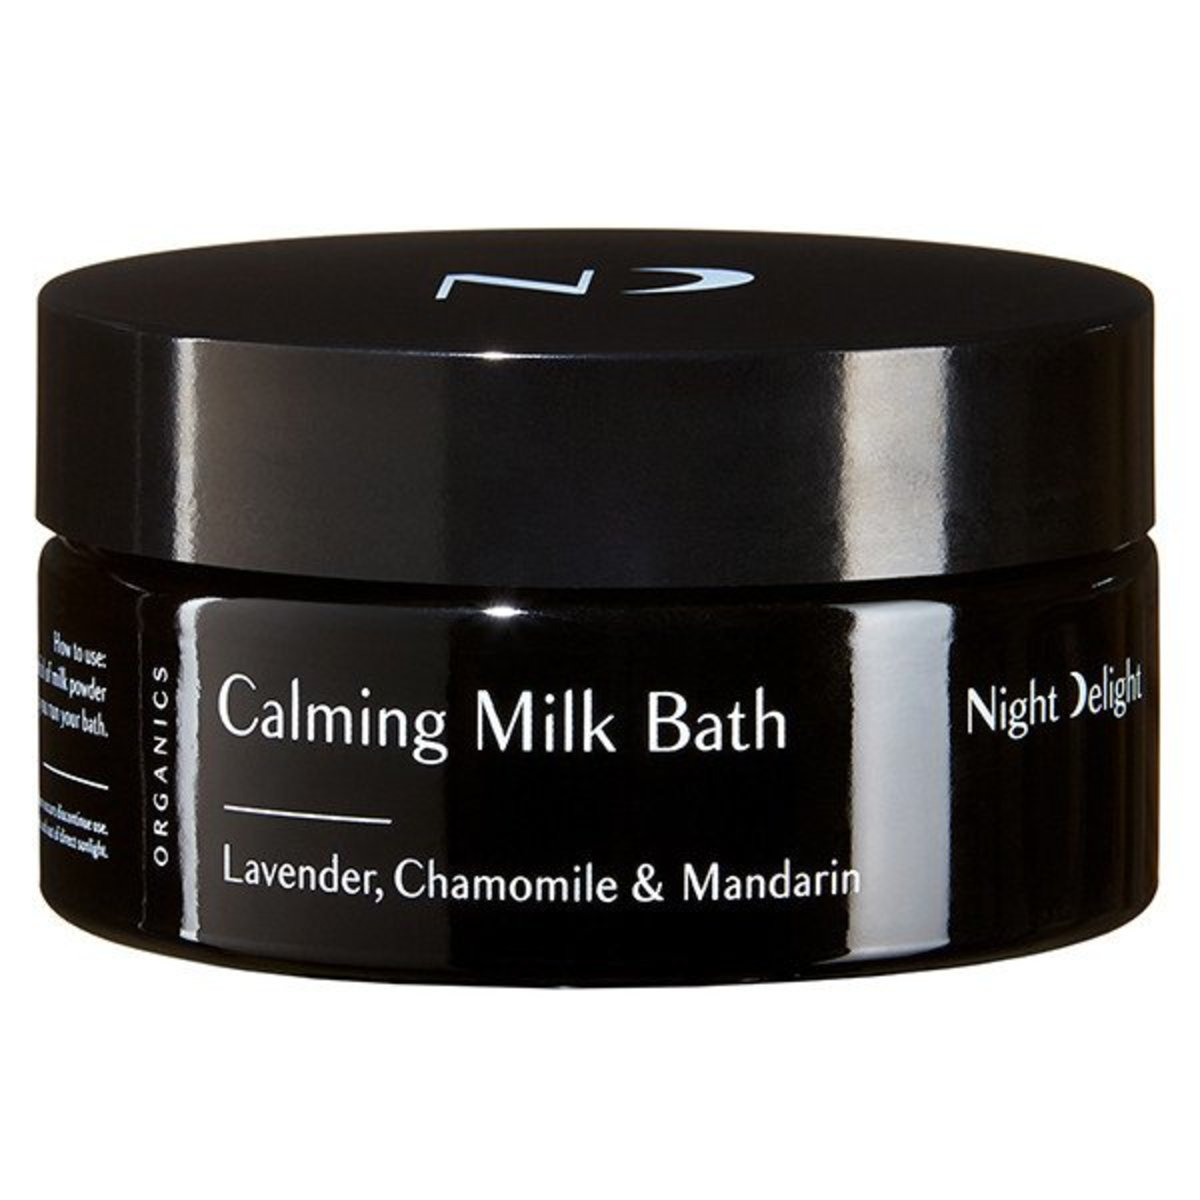 Night Delight Calming Bath Milk